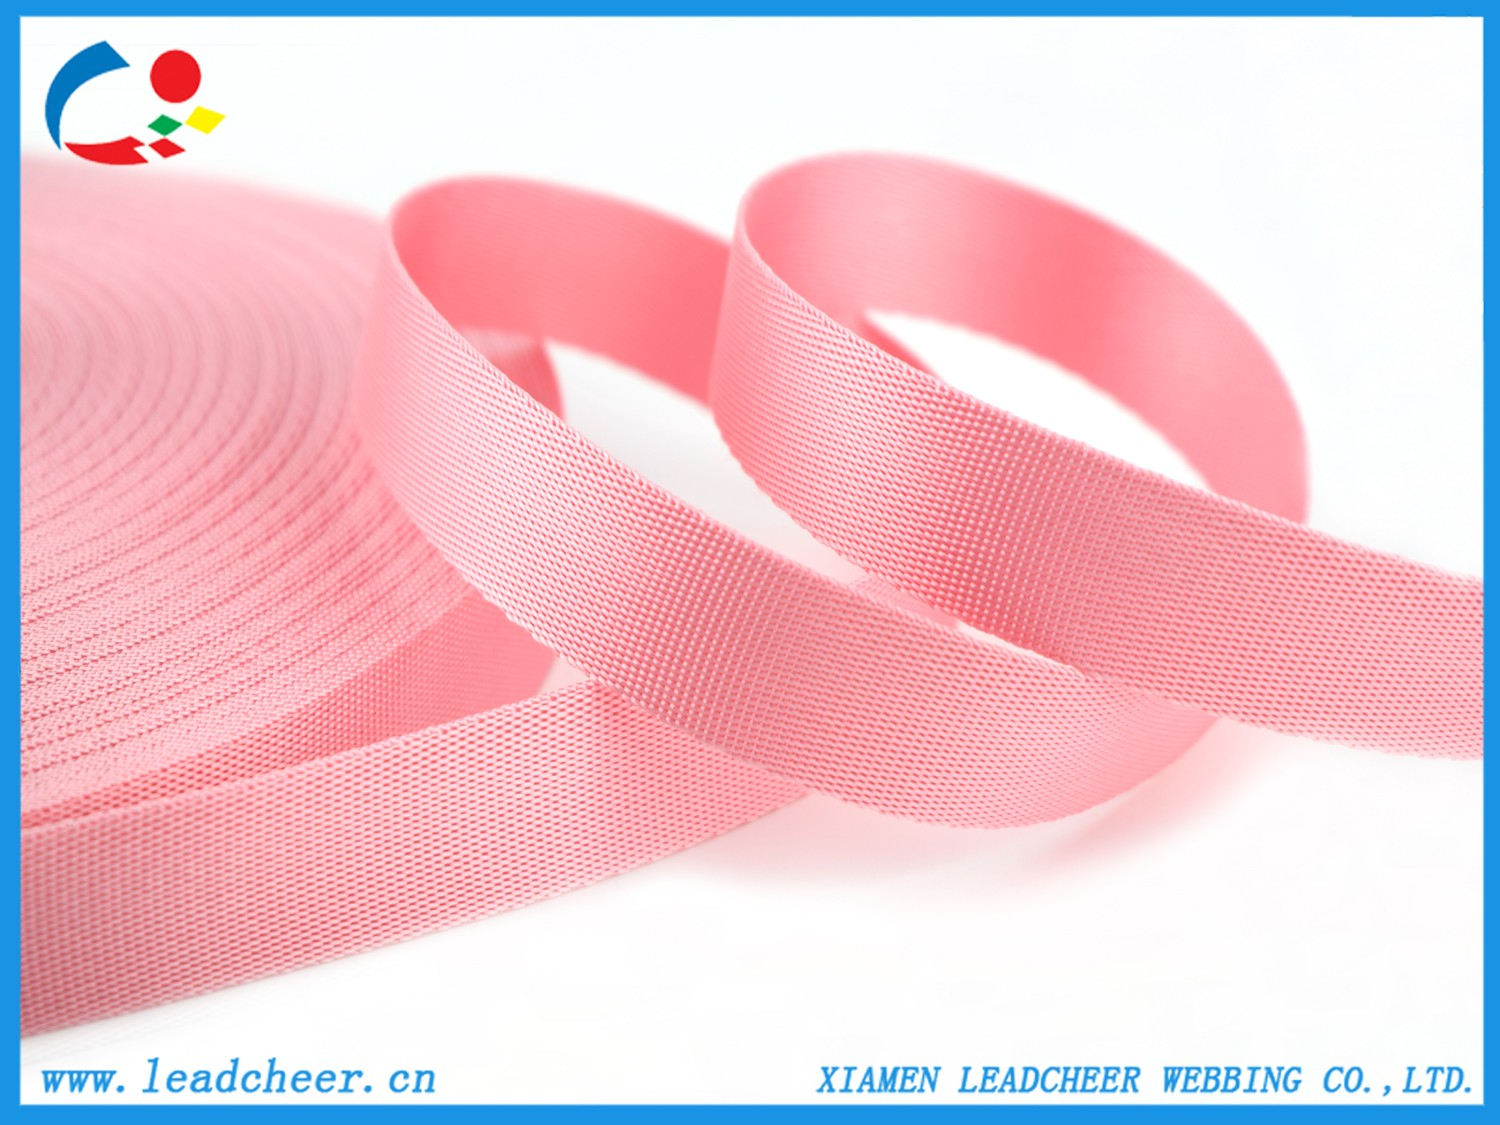 High quality Fashion Decoration Nylon Ribbon for Hair Bows Handbags Garment Accessories Quotes,China Fashion Decoration Nylon Ribbon for Hair Bows Handbags Garment Accessories Factory,Fashion Decoration Nylon Ribbon for Hair Bows Handbags Garment Accessories Purchasing